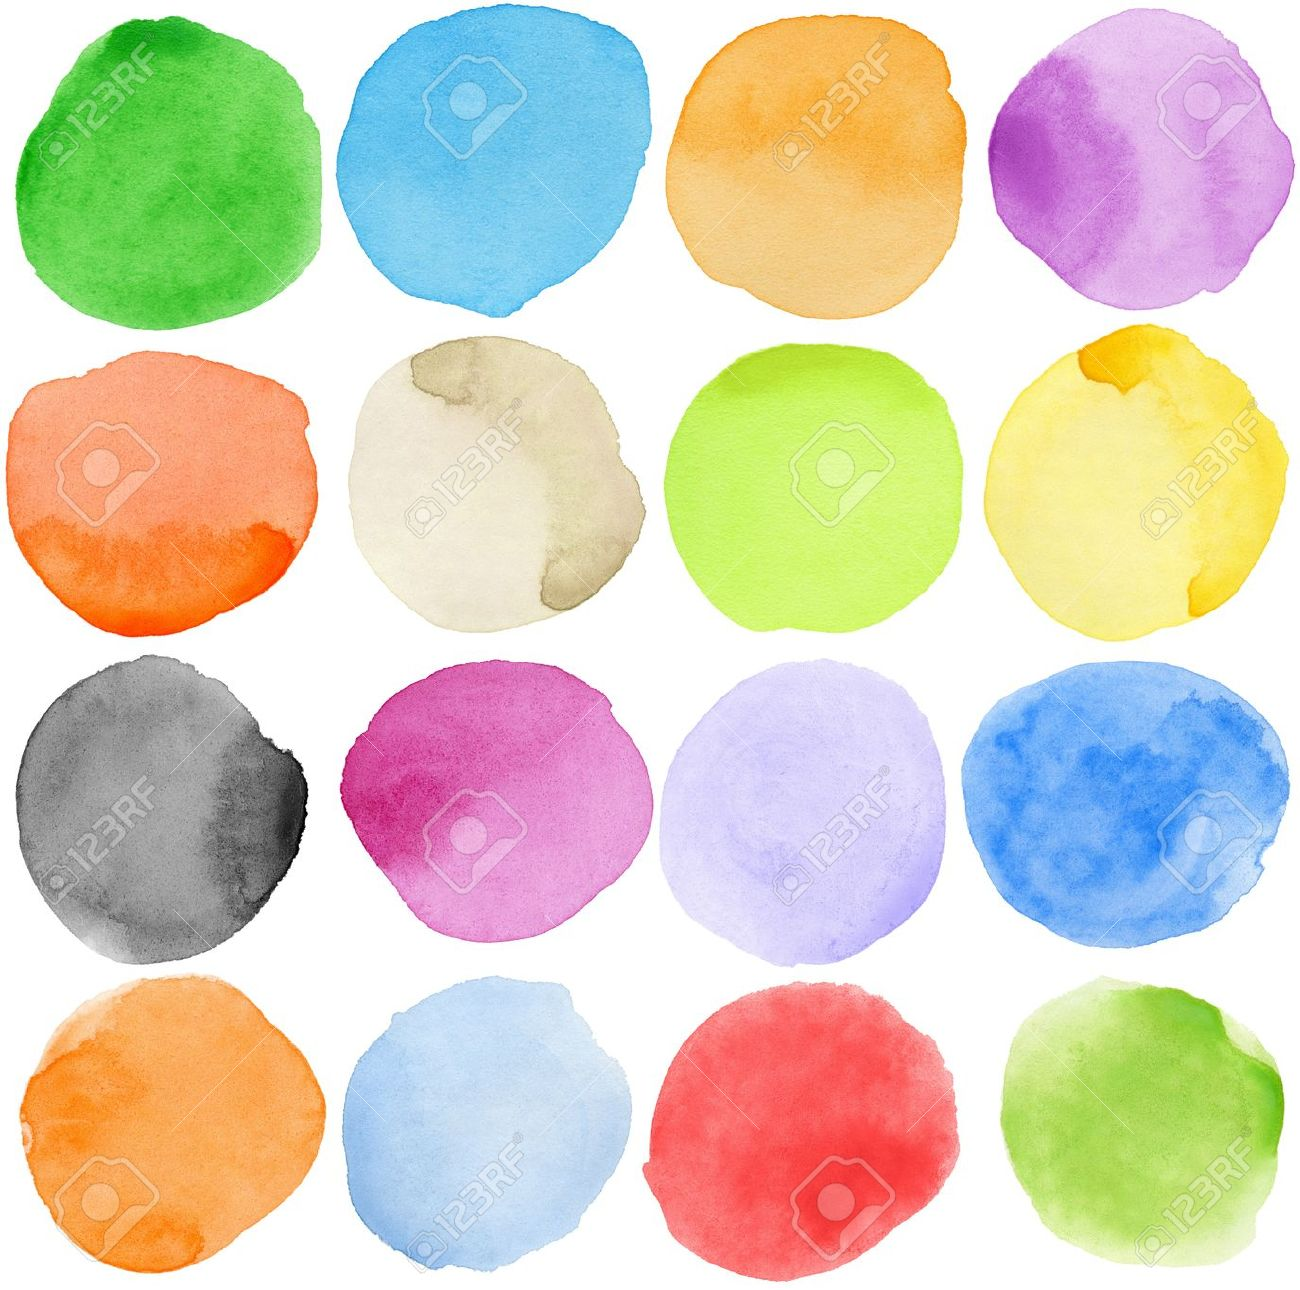 Watercolor hand painted circle shape design elements Stock Photo - 9904432